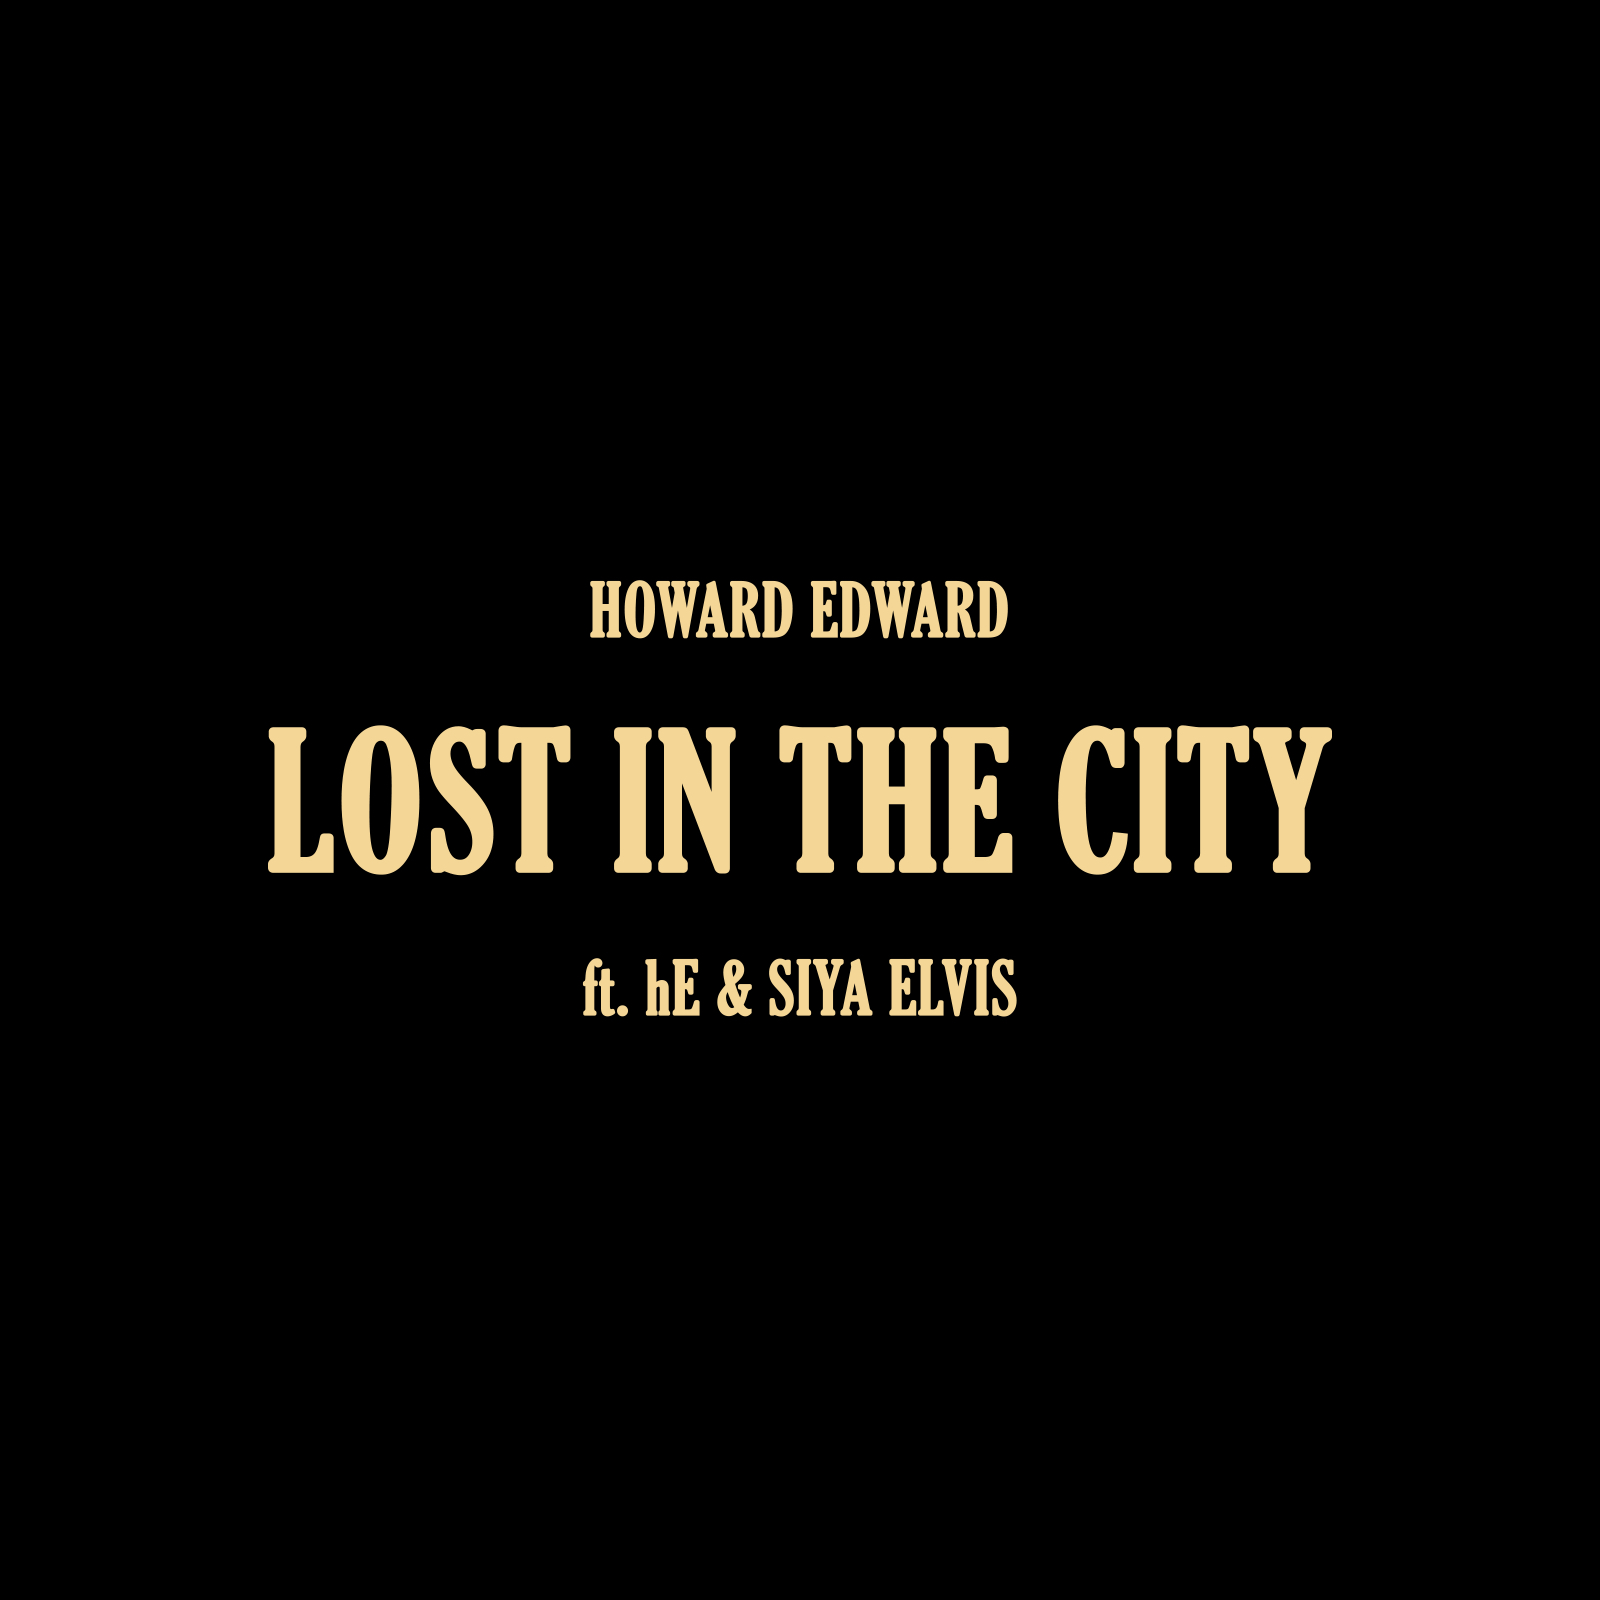 Howard Edward's Latest Single – Lost in the City